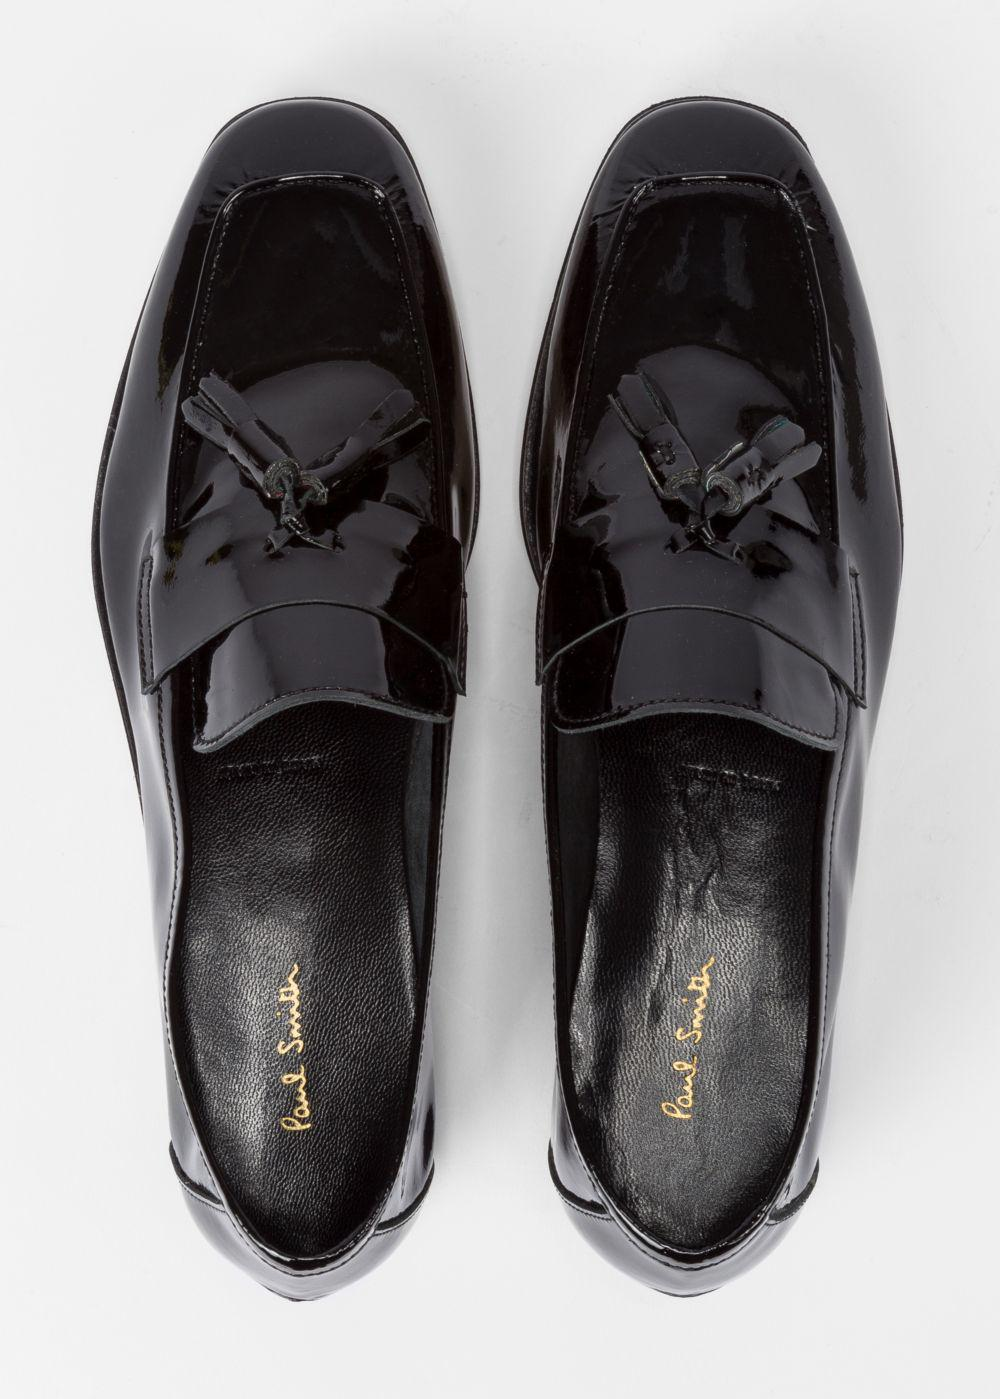 5b6496a8ee3 Paul Smith Women s Black Patent Leather  Glynn  Loafers in Black - Lyst